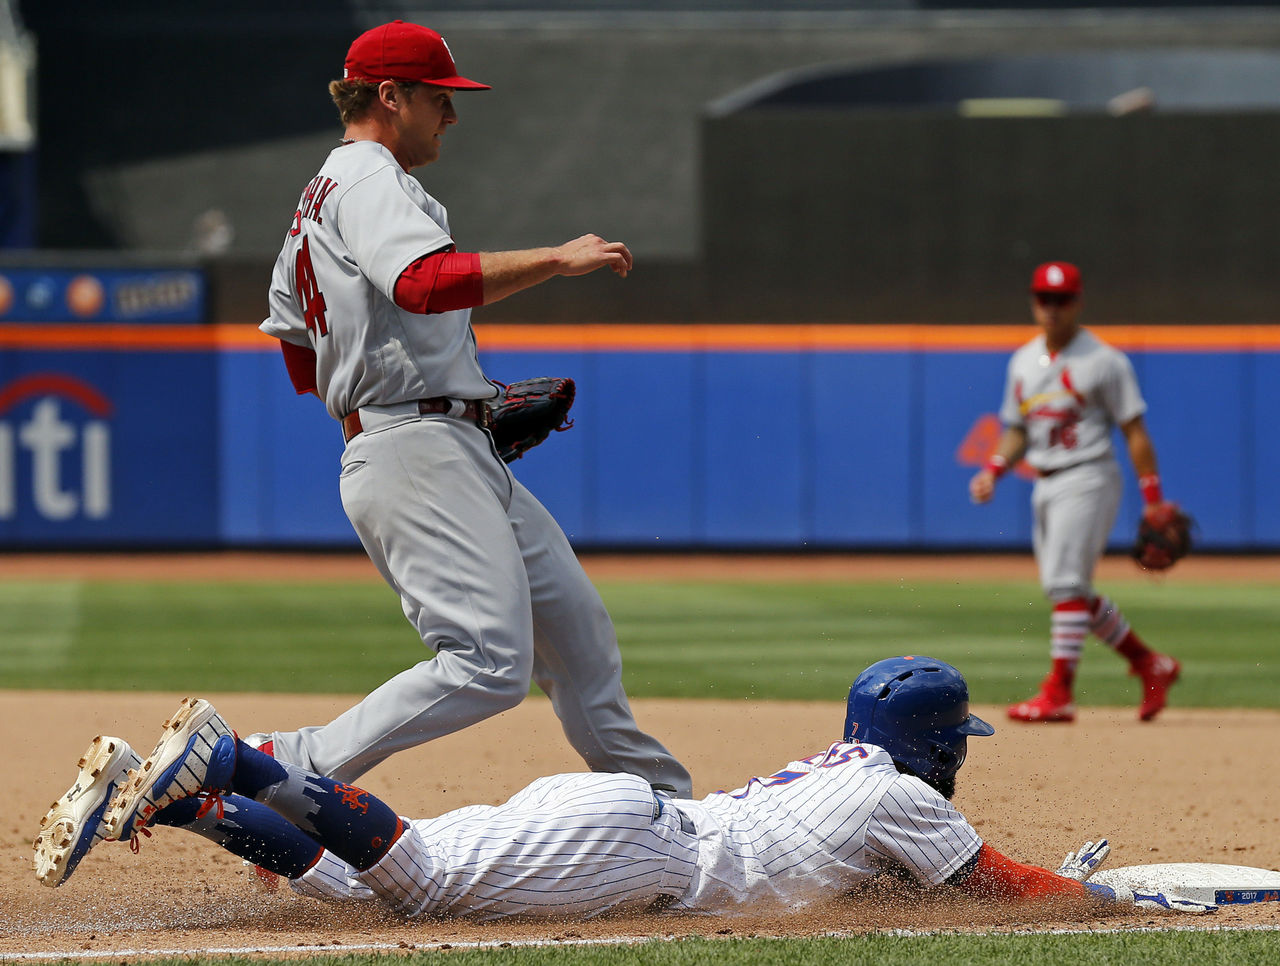 Cropped_2017-07-20t191321z_876916841_nocid_rtrmadp_3_mlb-st-louis-cardinals-at-new-york-mets